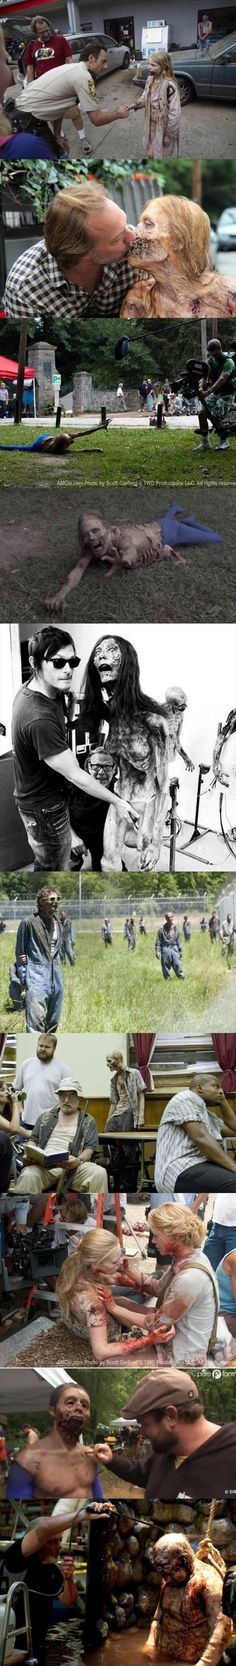 Behind The Scenes Of The Walking Dead pics